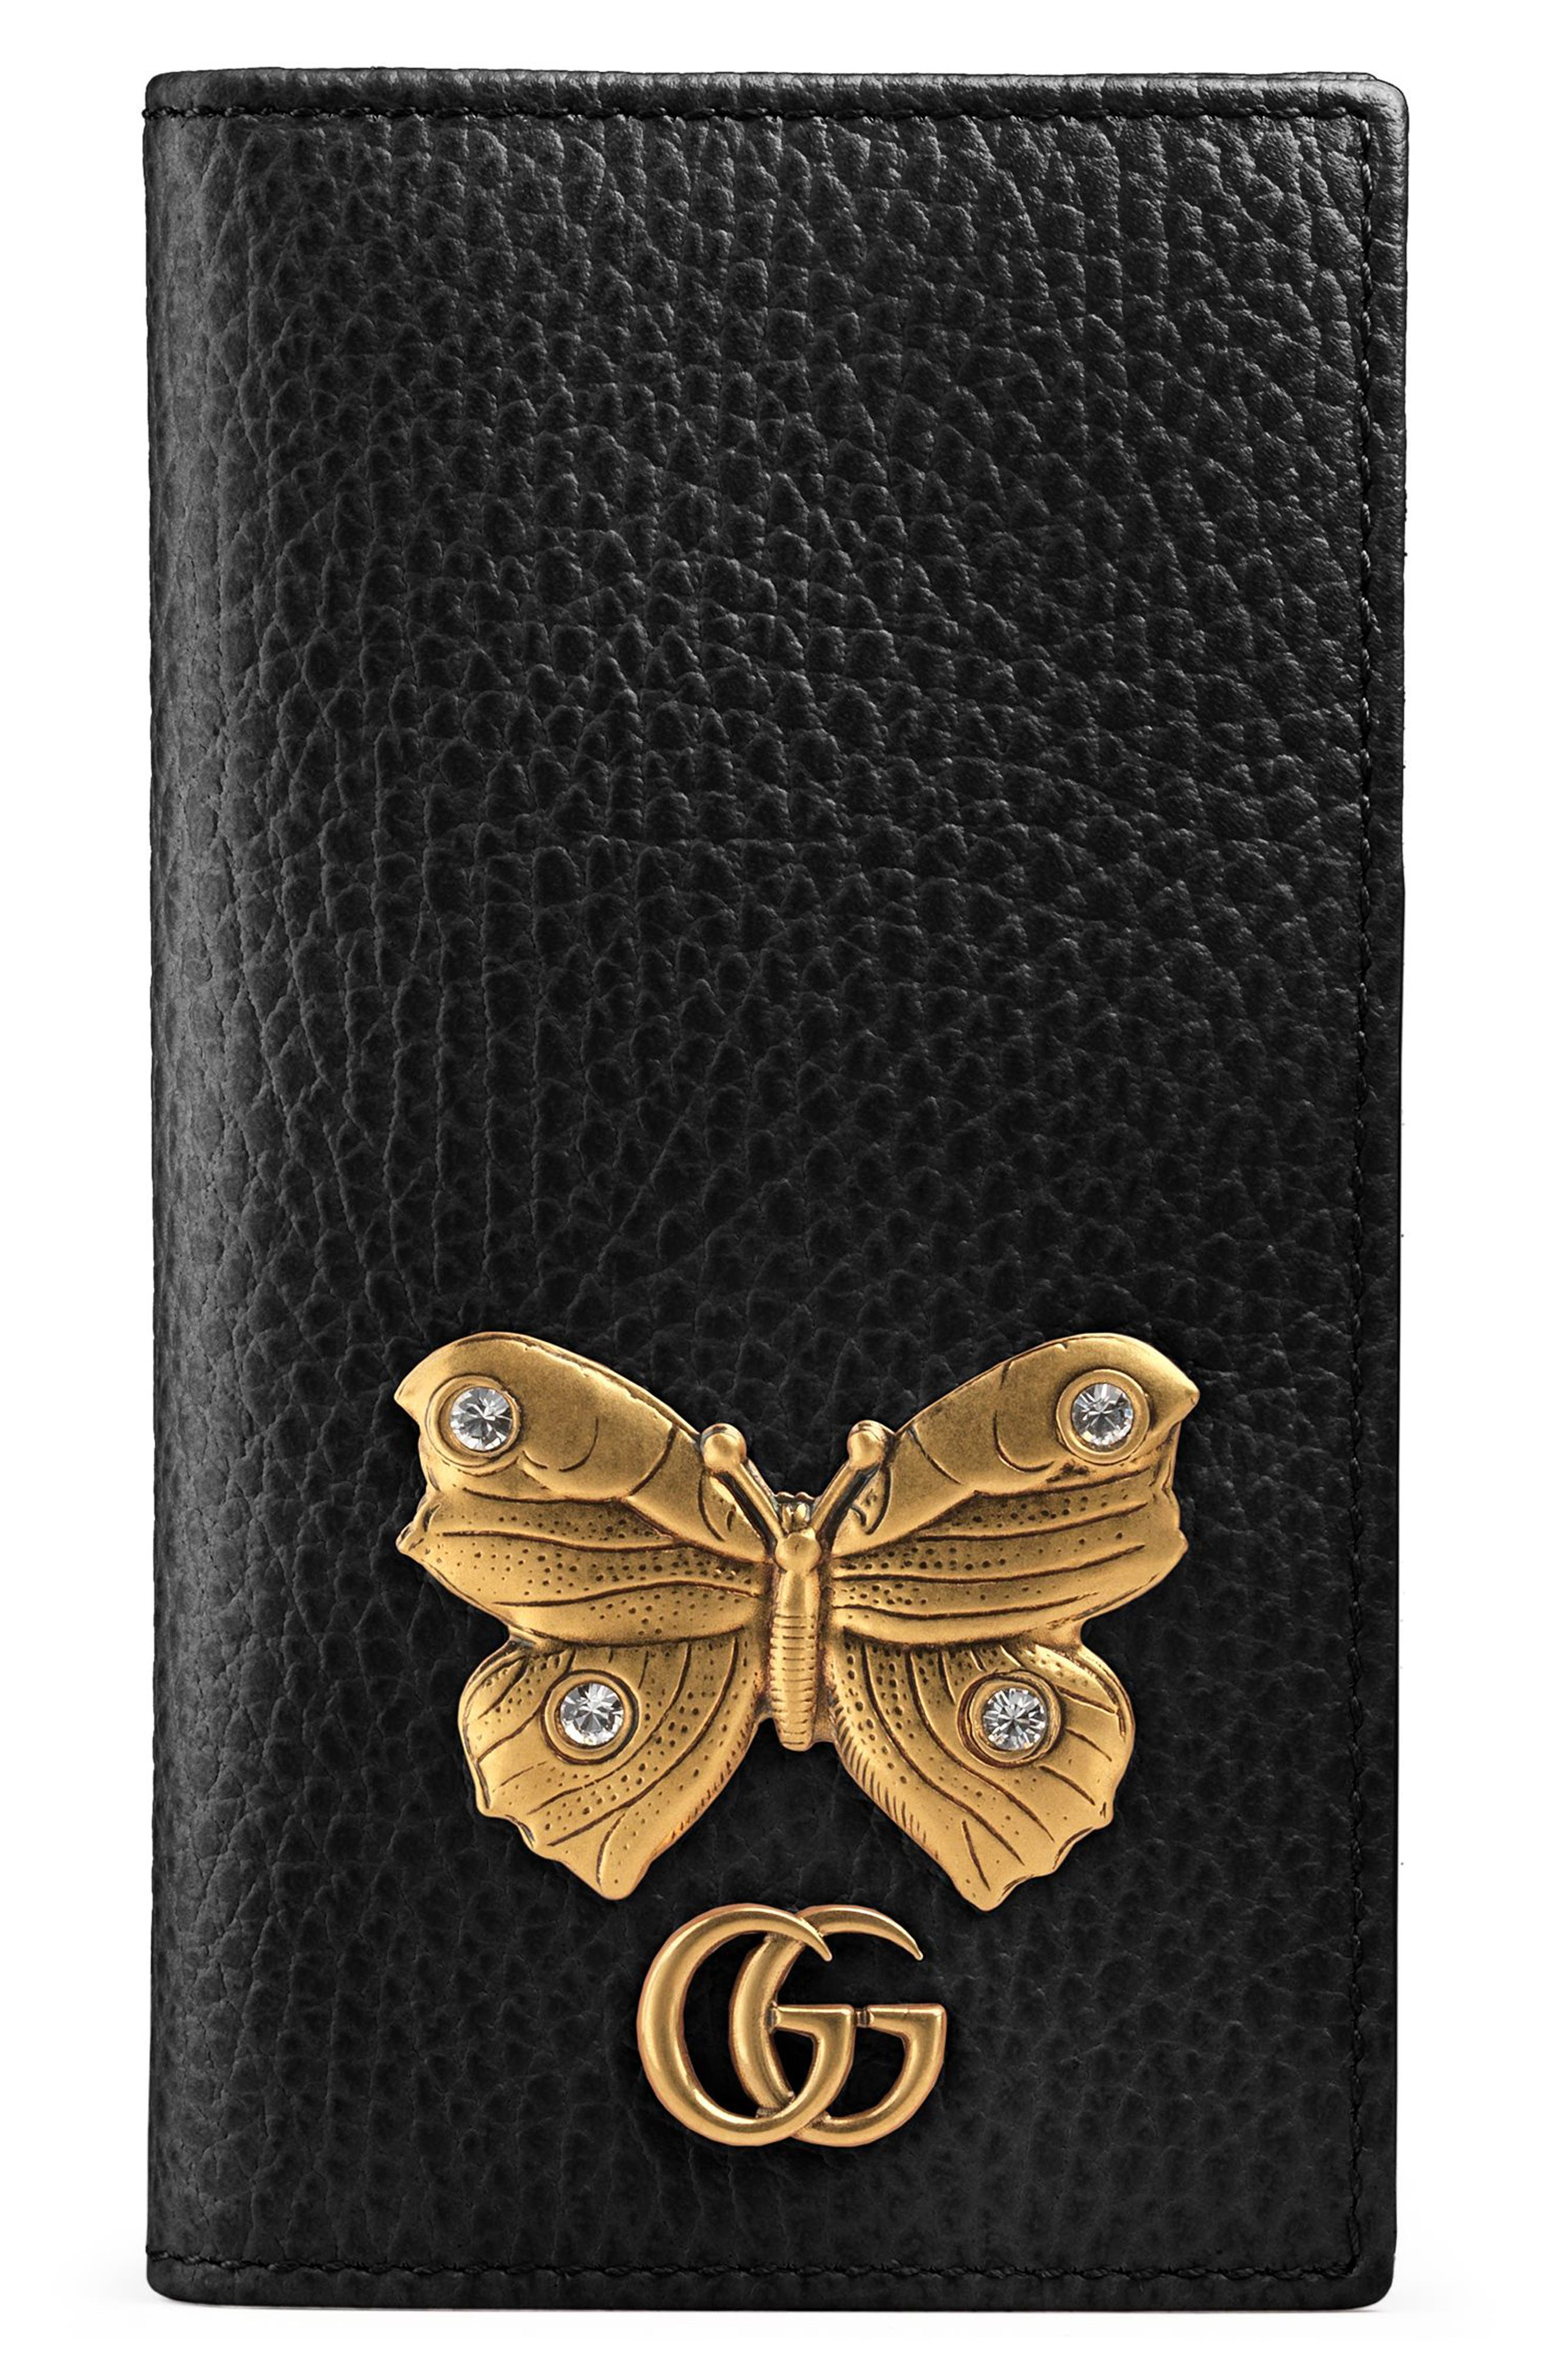 Gucci Farfalla Leather iPhone 7 Case